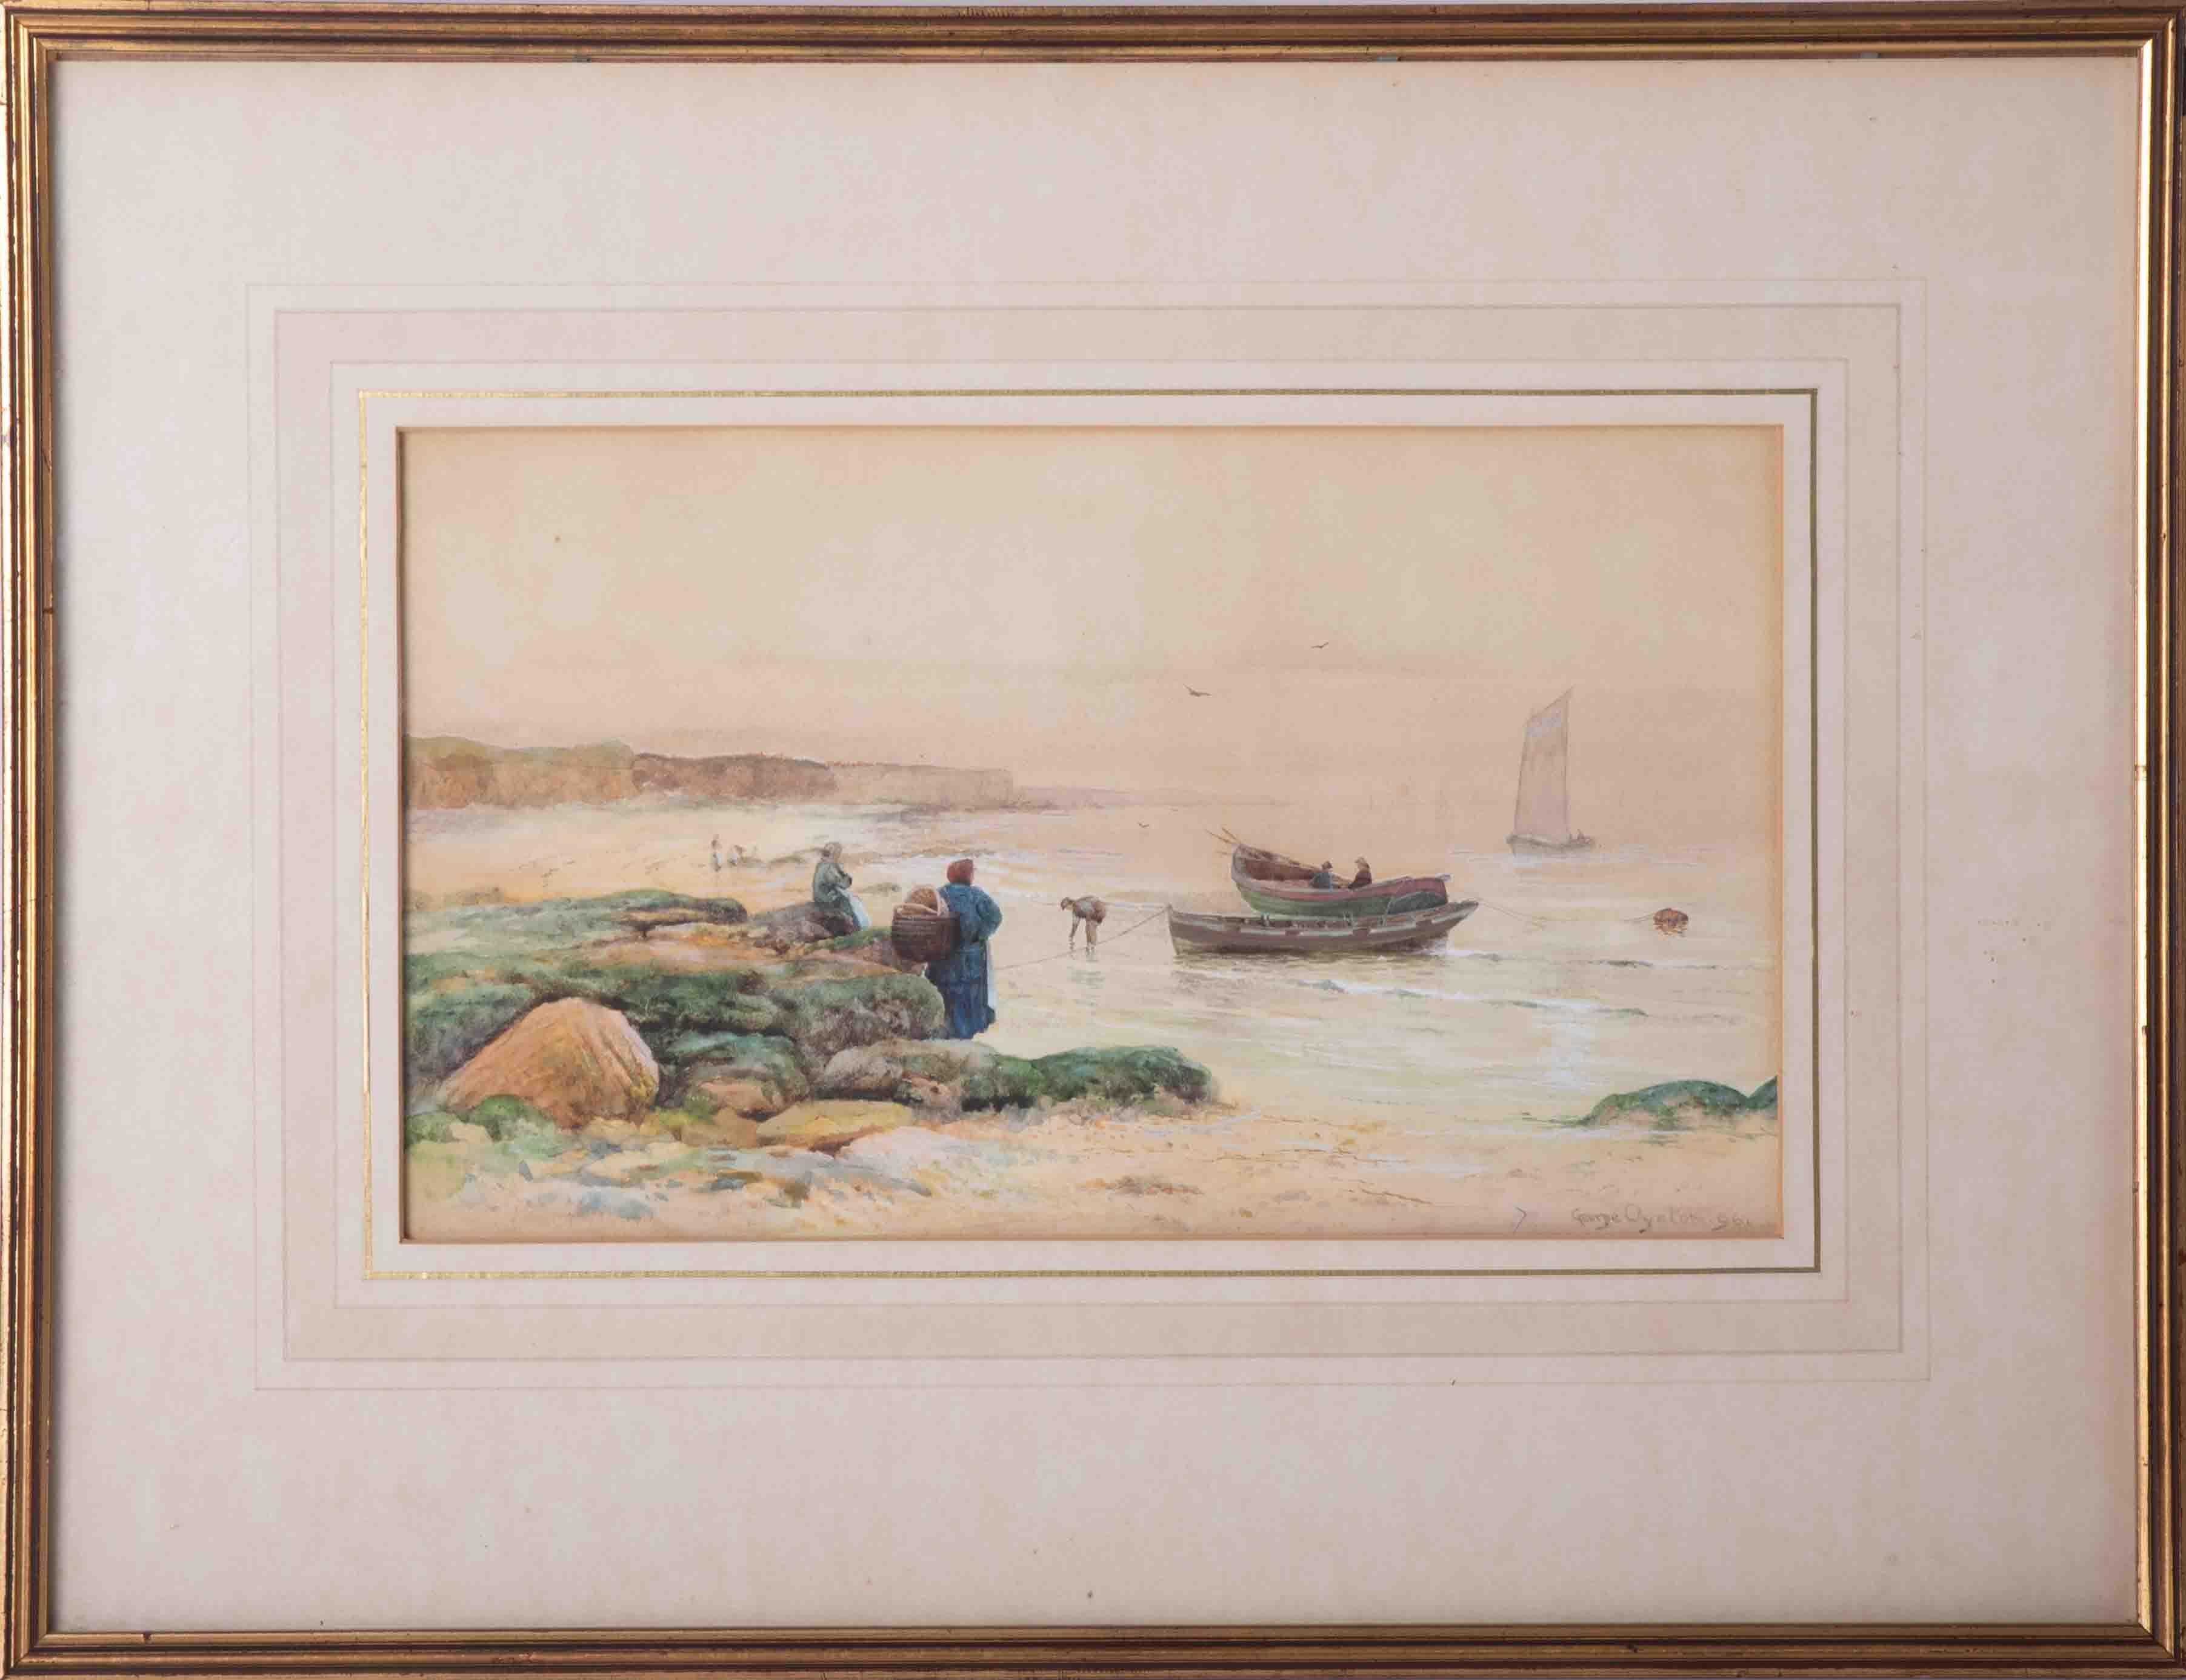 George Oyston (1861-1937), 1896 signed watercolour, 'Figures on the beach, fishing boats', 20cm x